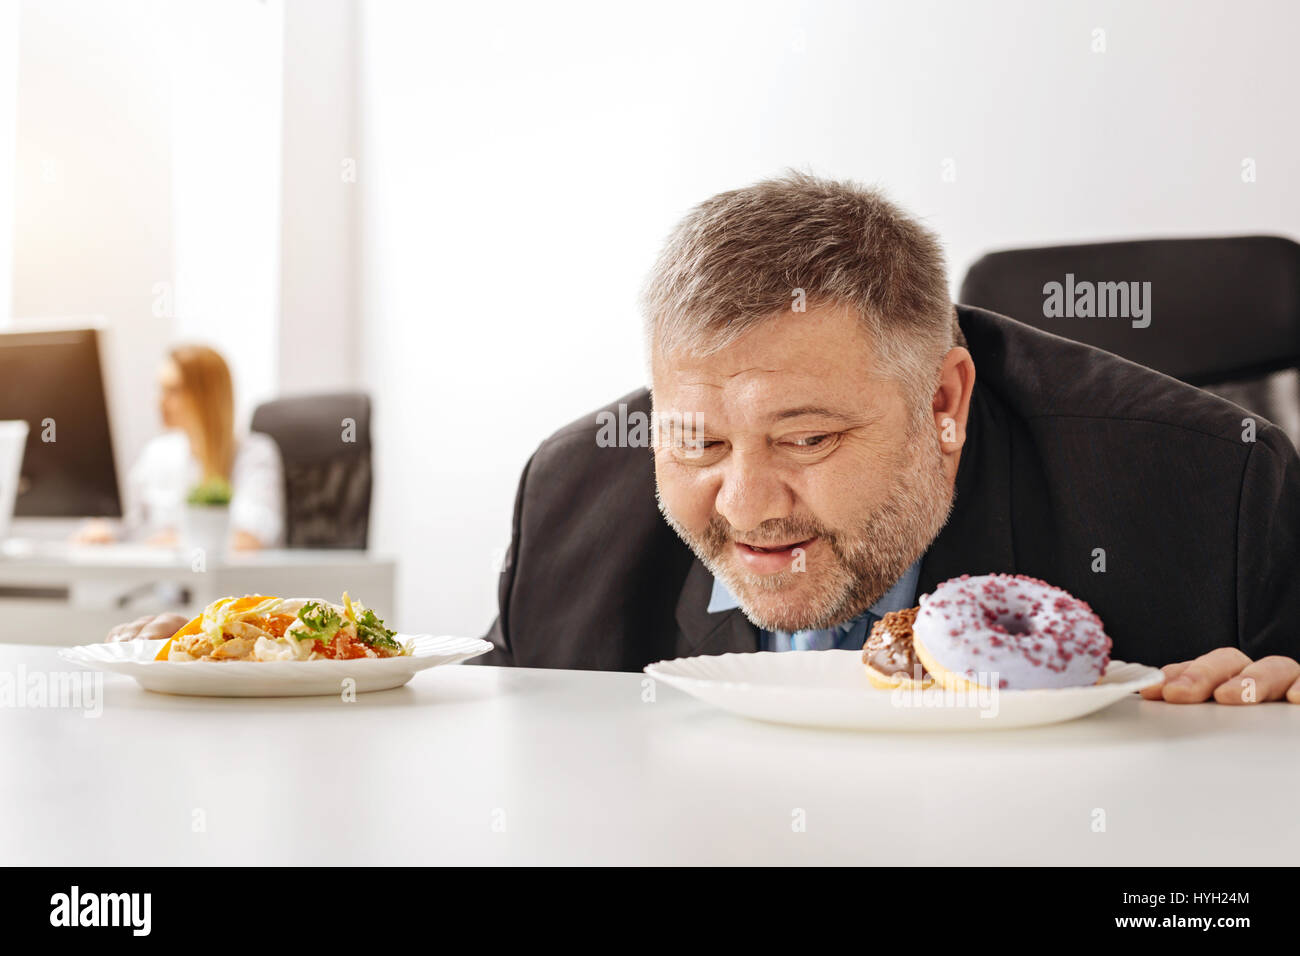 Will less excessive guy cannot resist junk food - Stock Image